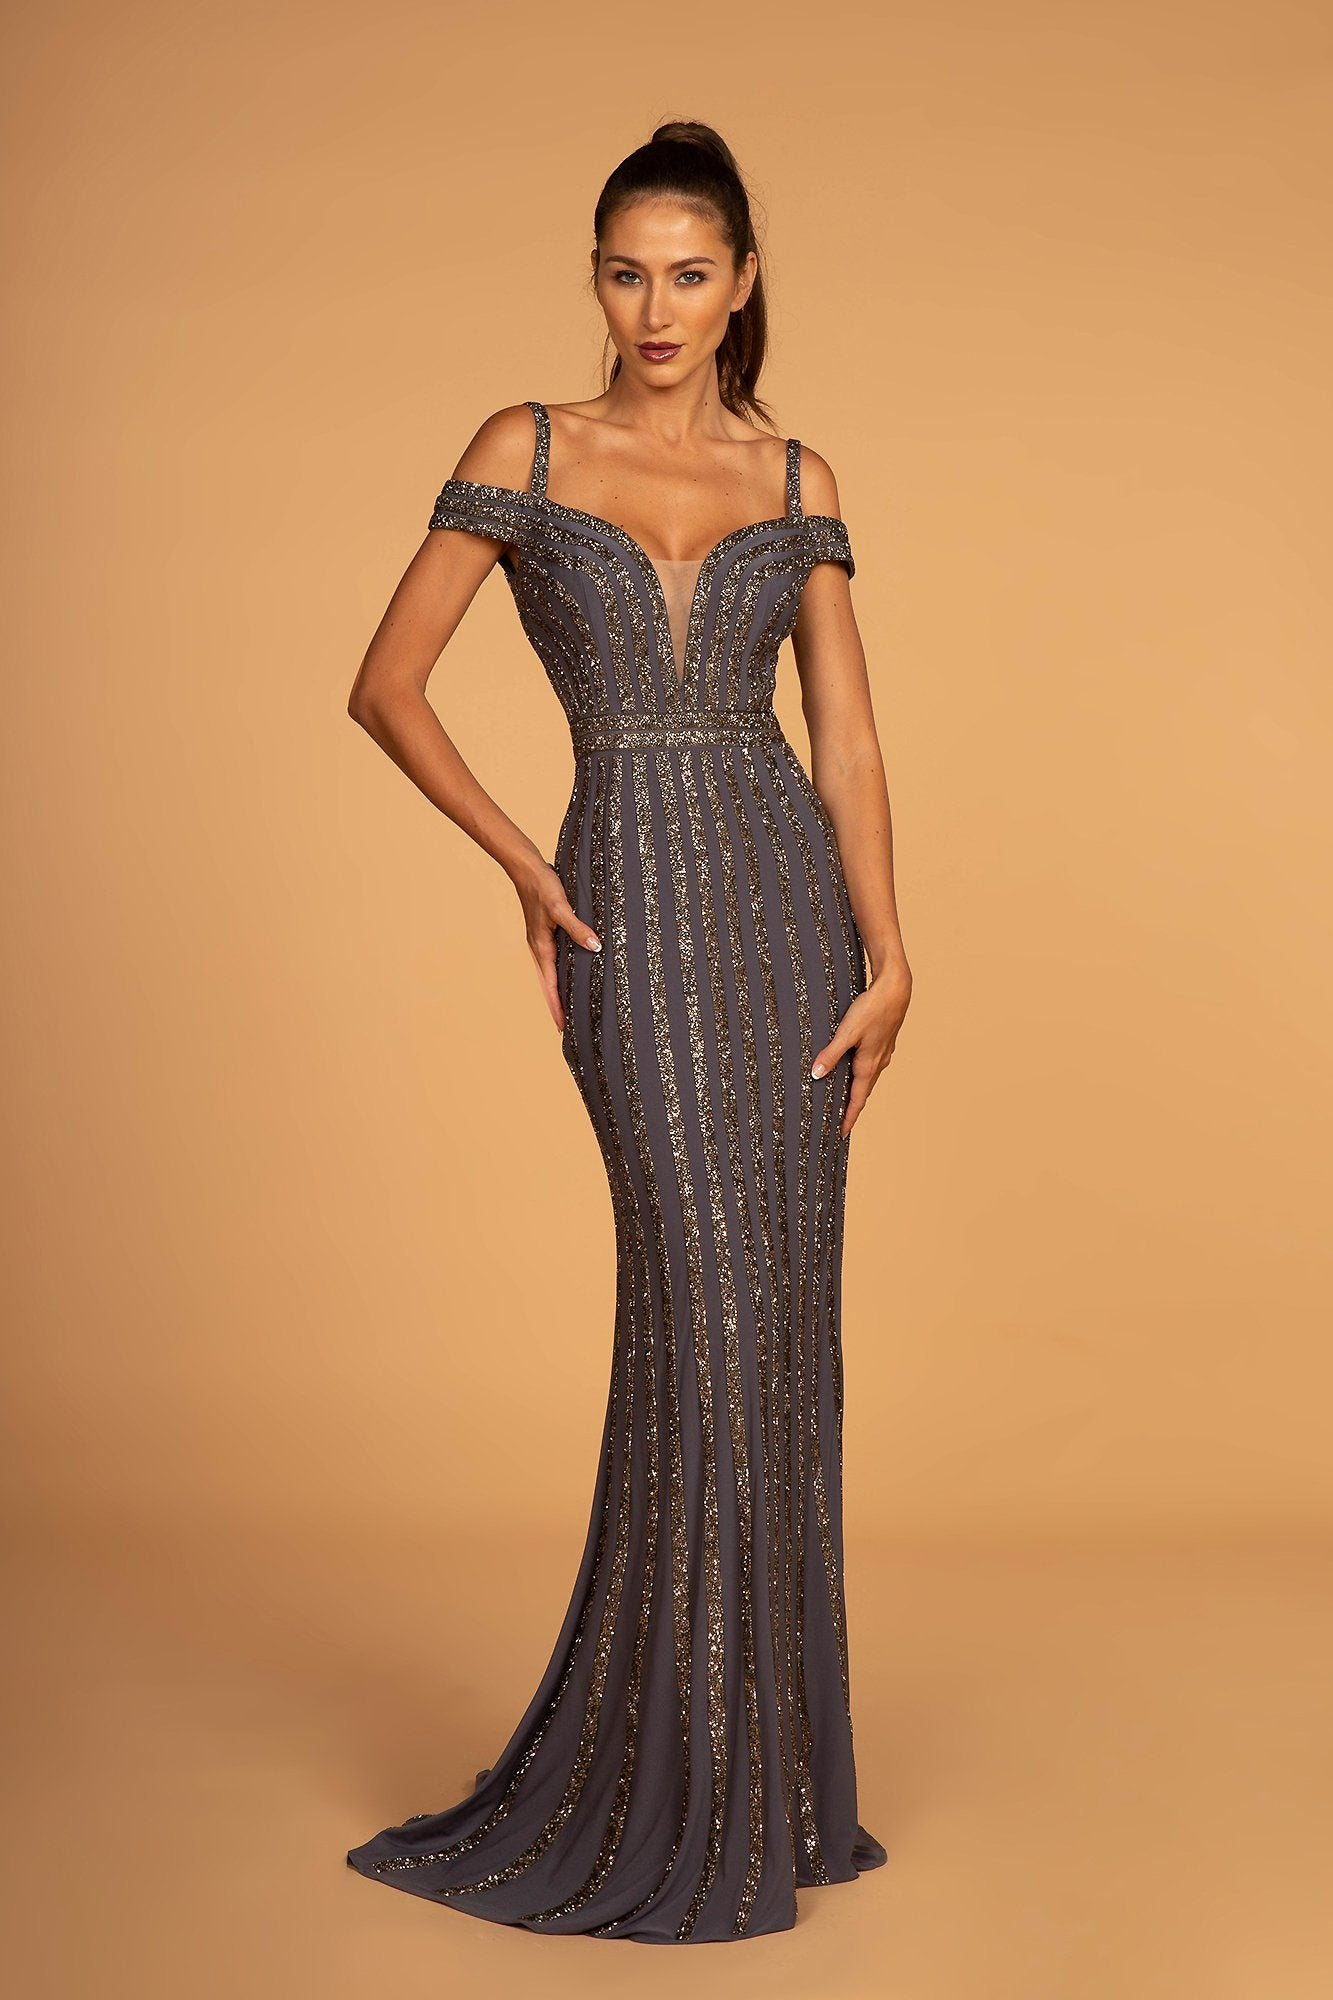 c8557912ebb Extravagant sequin prom dress gls 2629-Simply Fab Dress ...